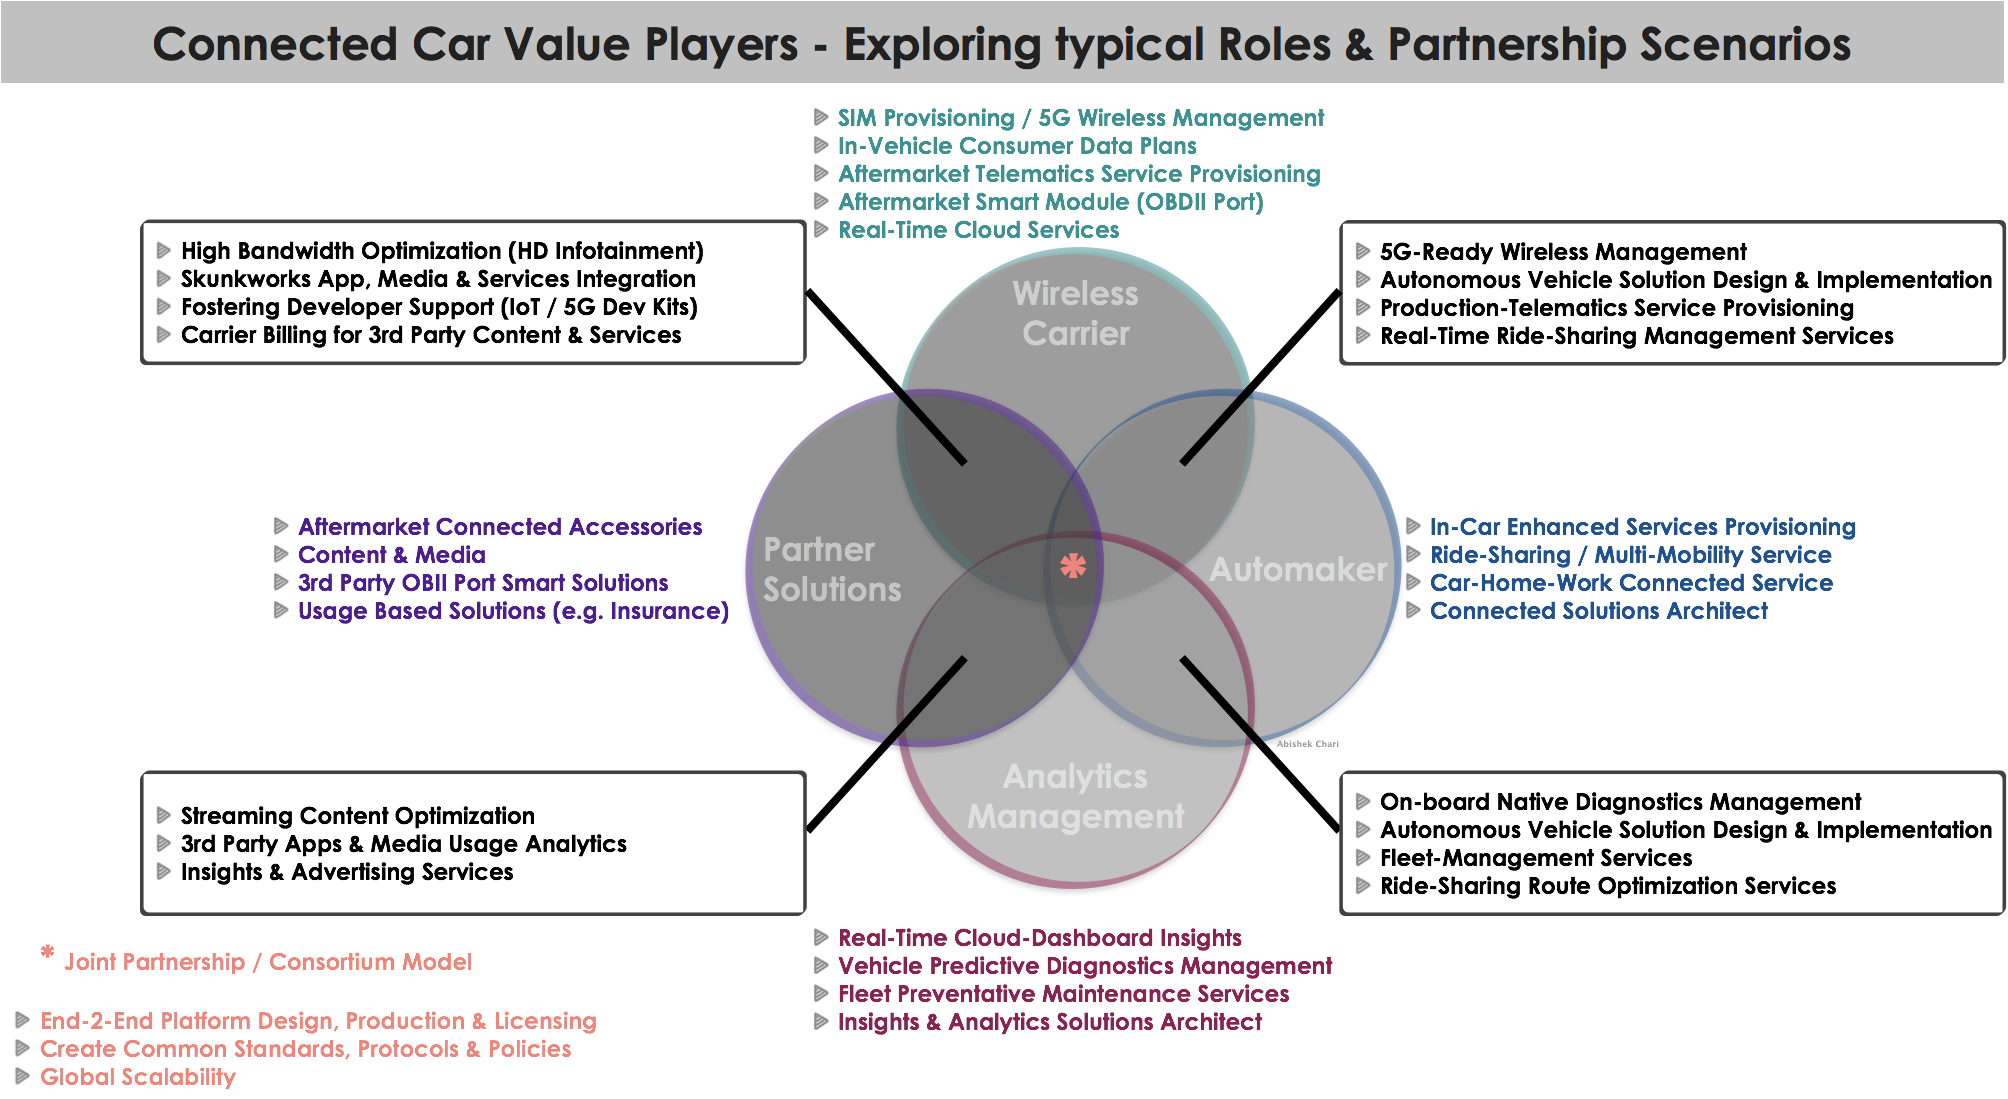 Connected Car Value Player Partnerships